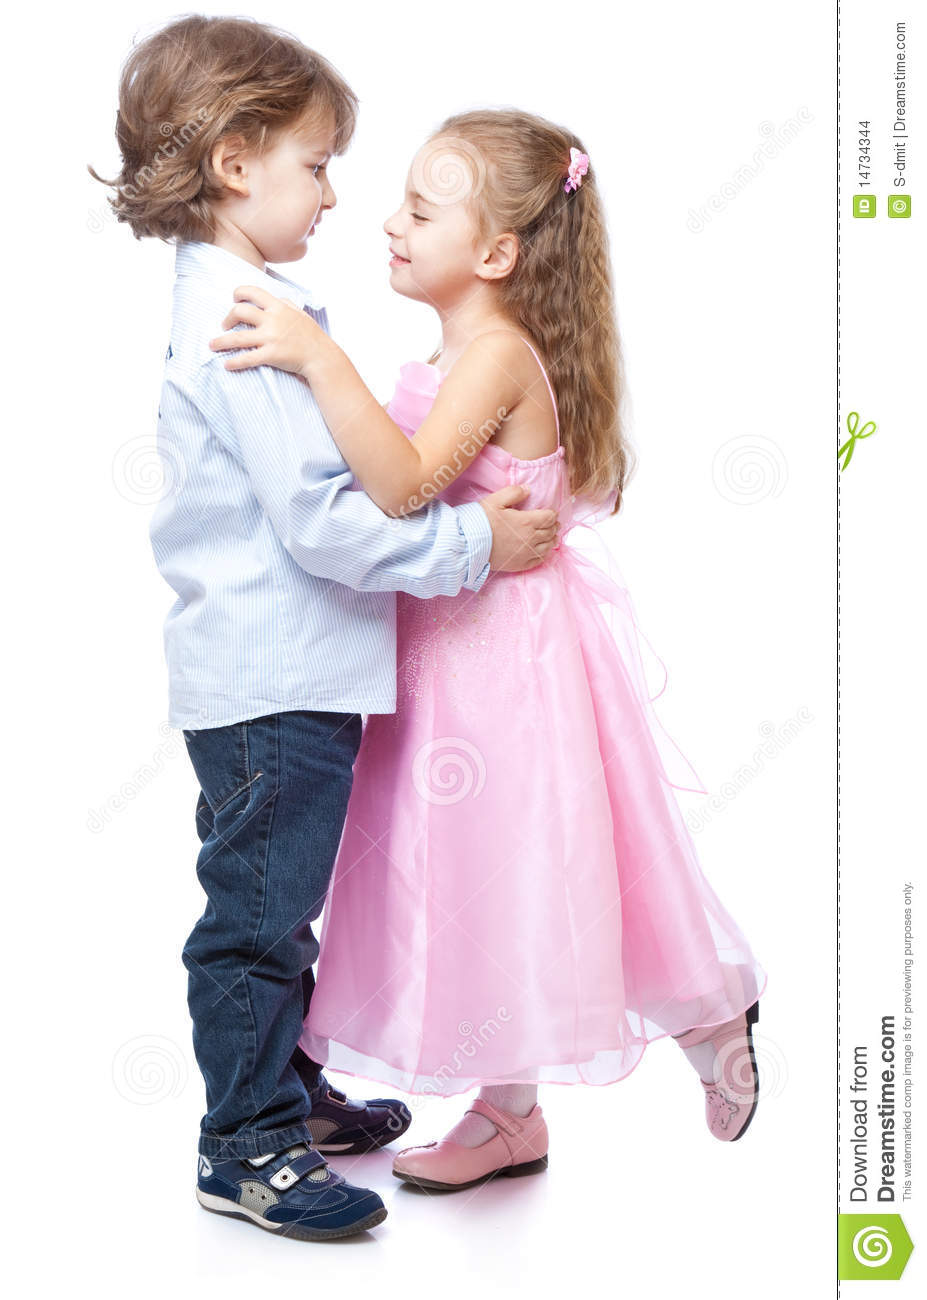 ed89cbadae87 Little Boy And Girl In Love Stock Photo - Image of cute ...